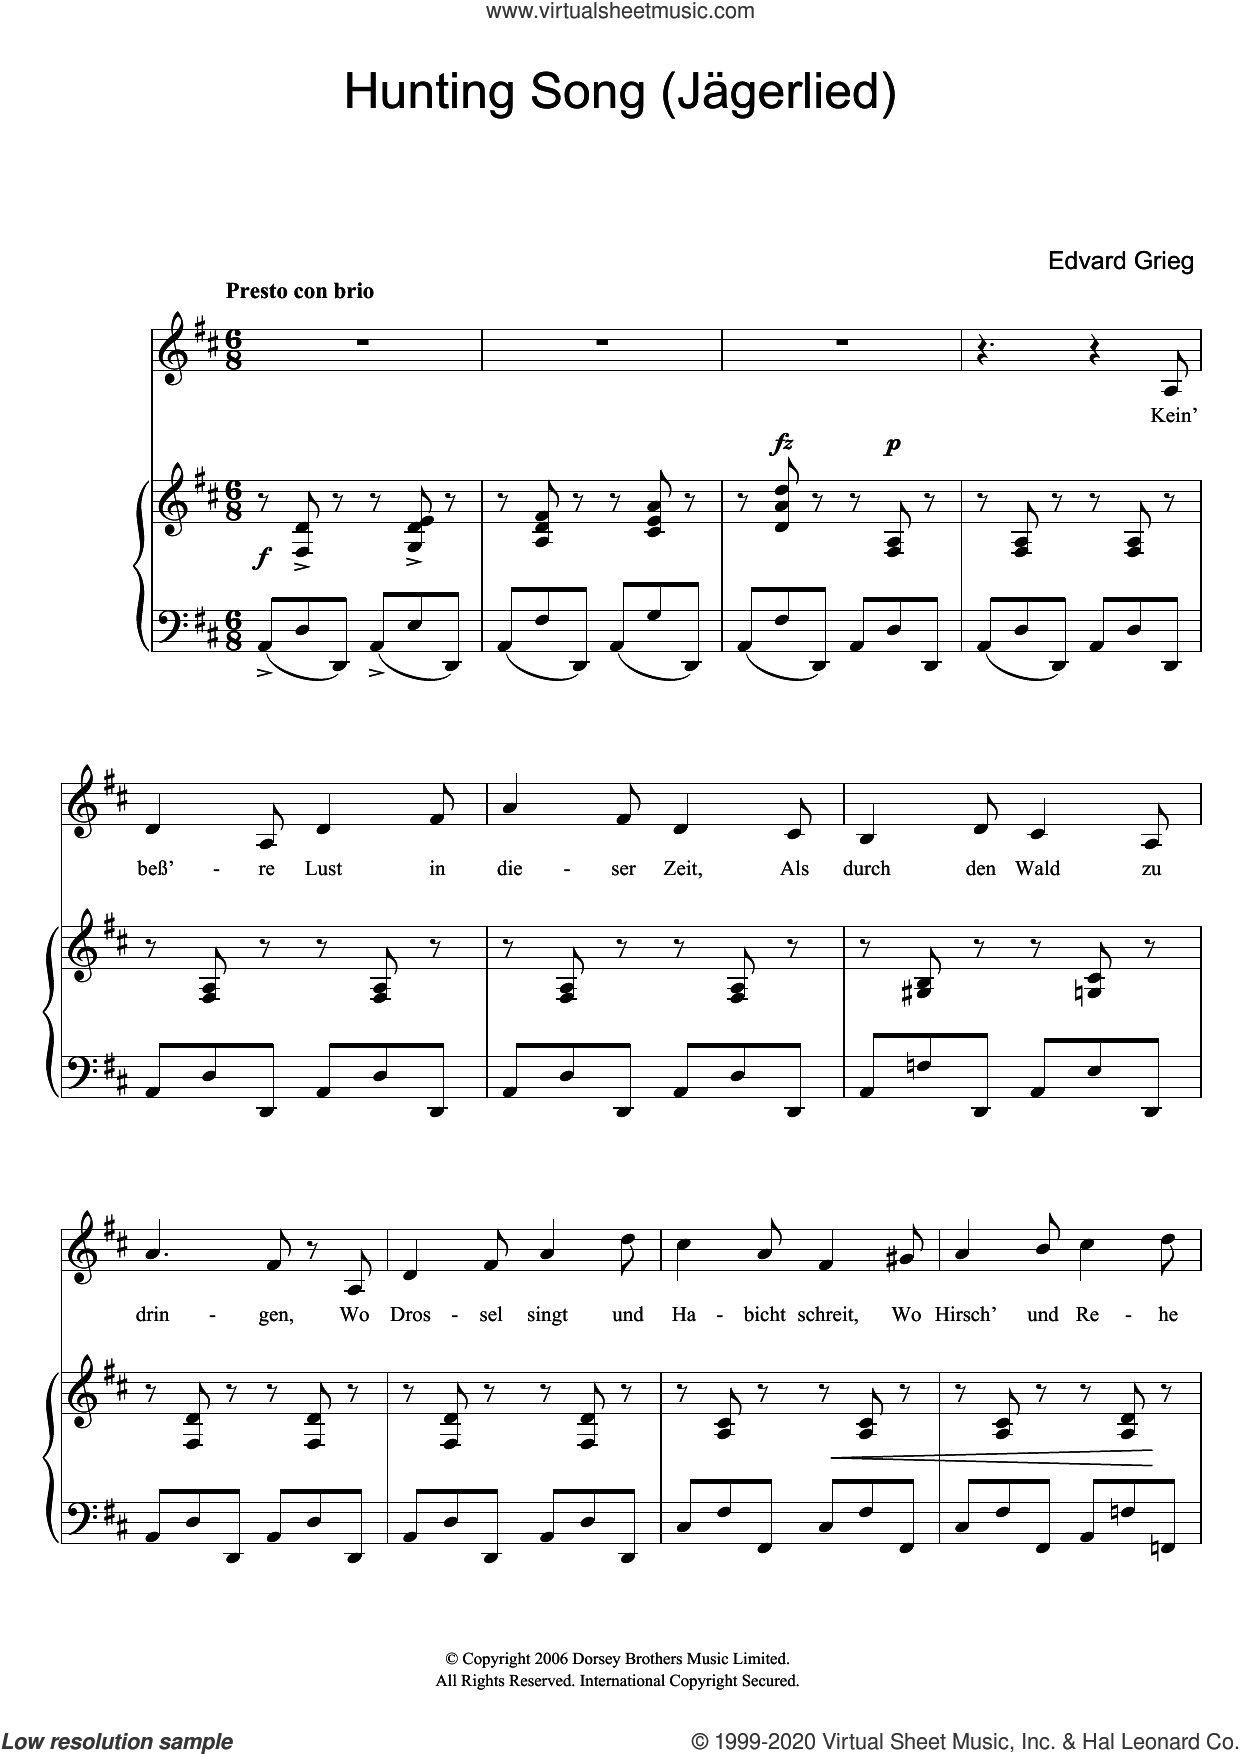 Hunting Song (Jagerlied) sheet music for voice and piano by Edvard Grieg, classical score, intermediate skill level